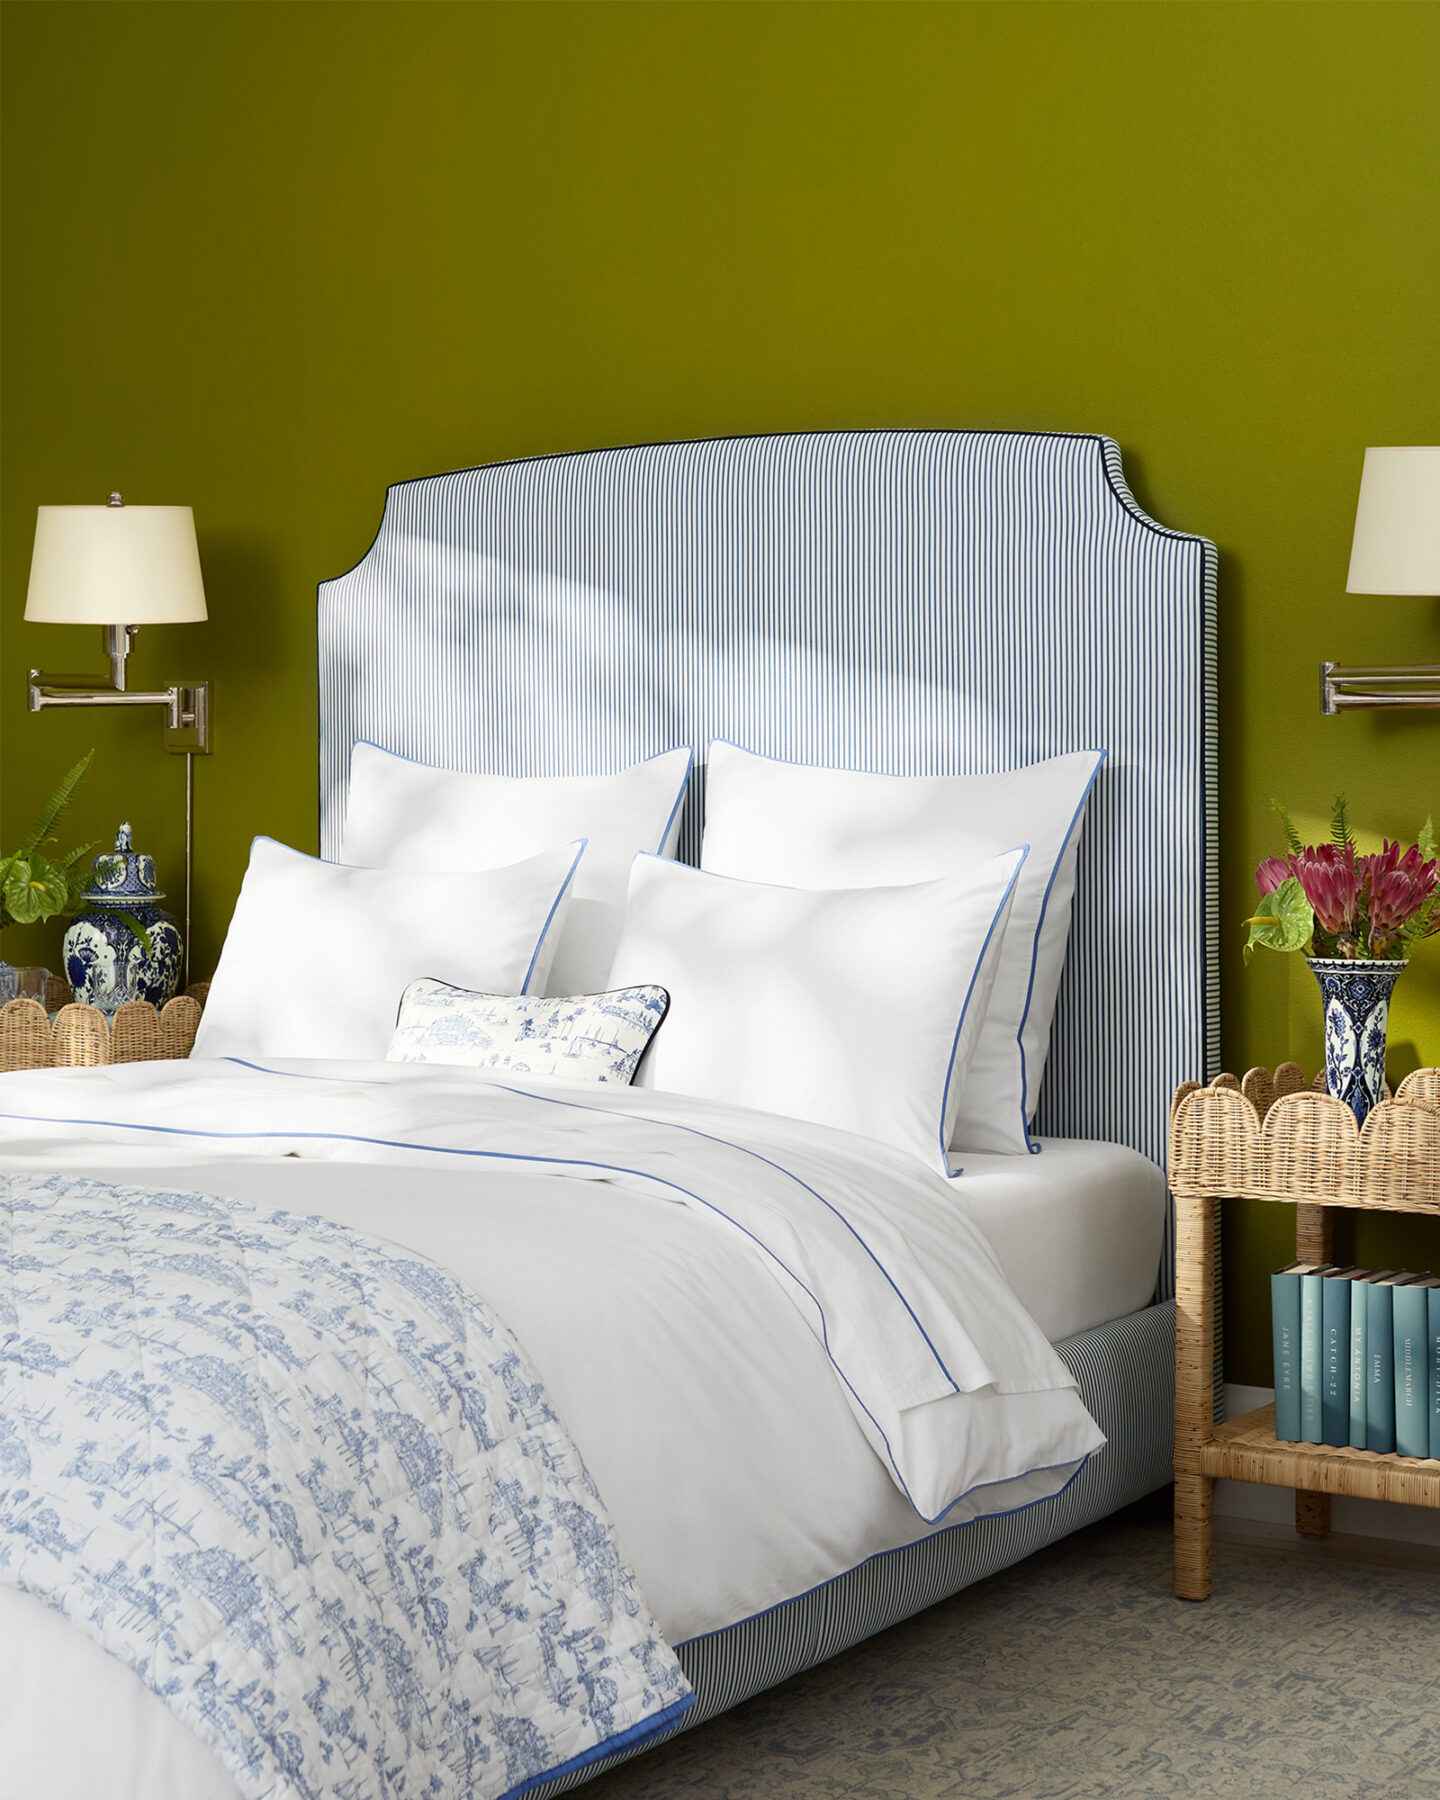 Charming coastal bedroom with French blue pinstripe bed and sophisticated chartreuse wall color.